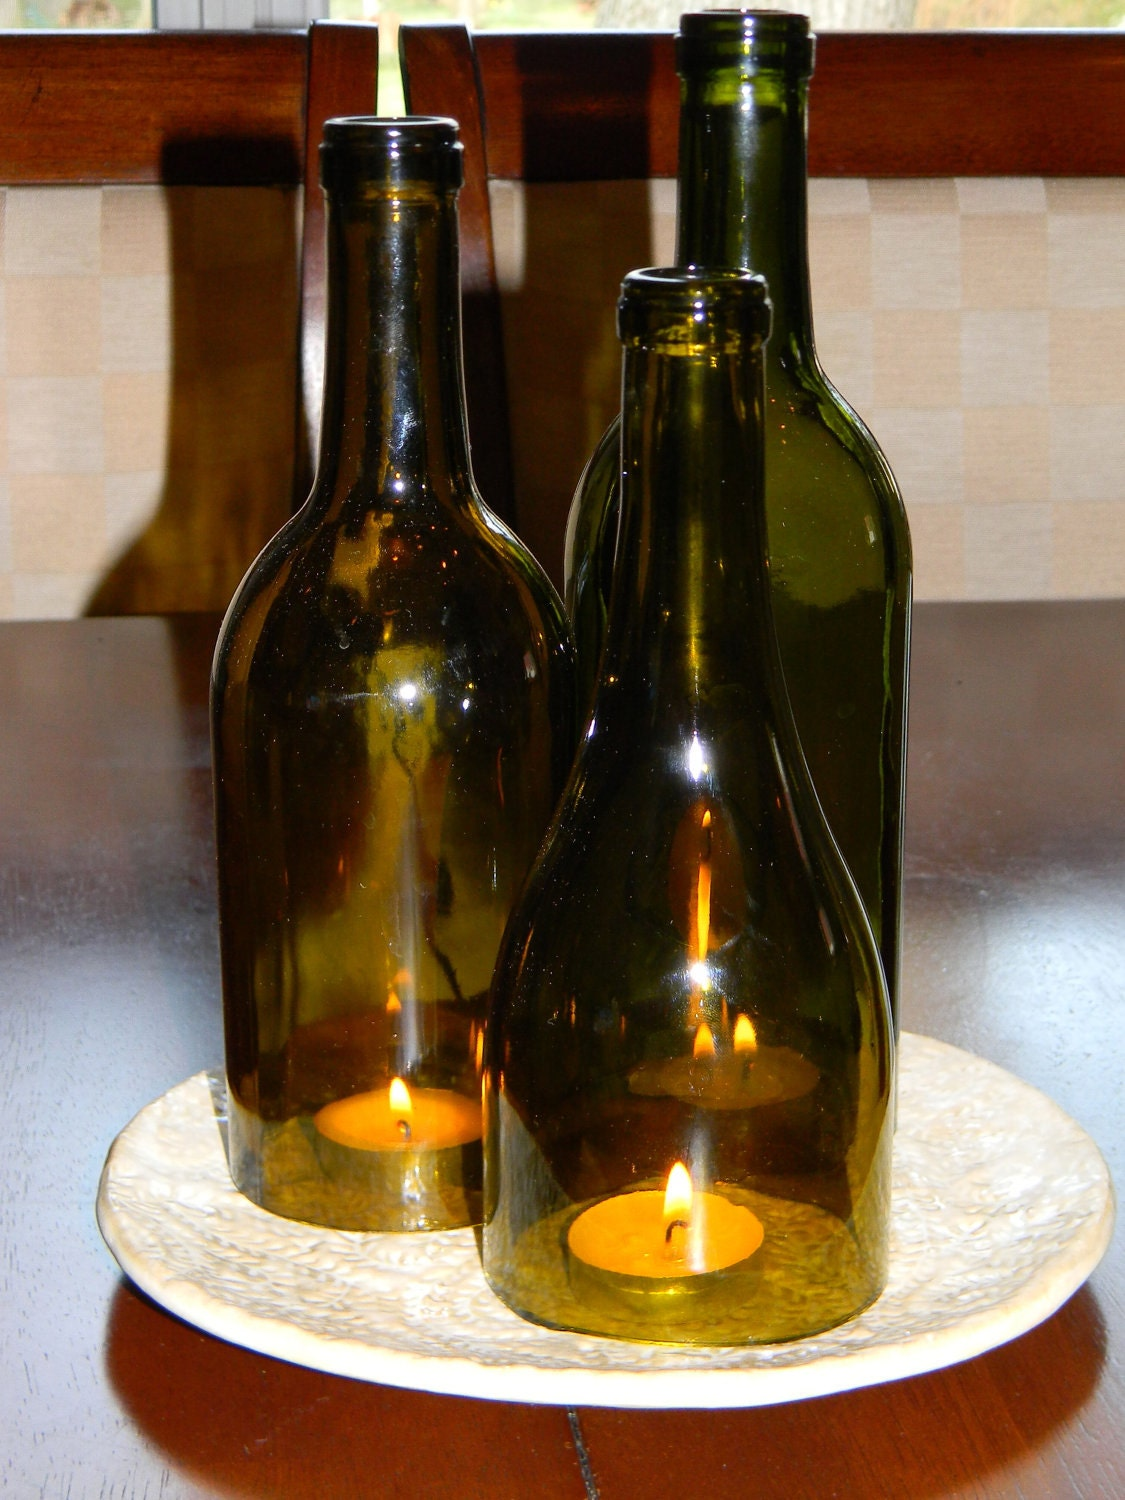 Simply elegant wine bottles centerpiece by cabernetlights